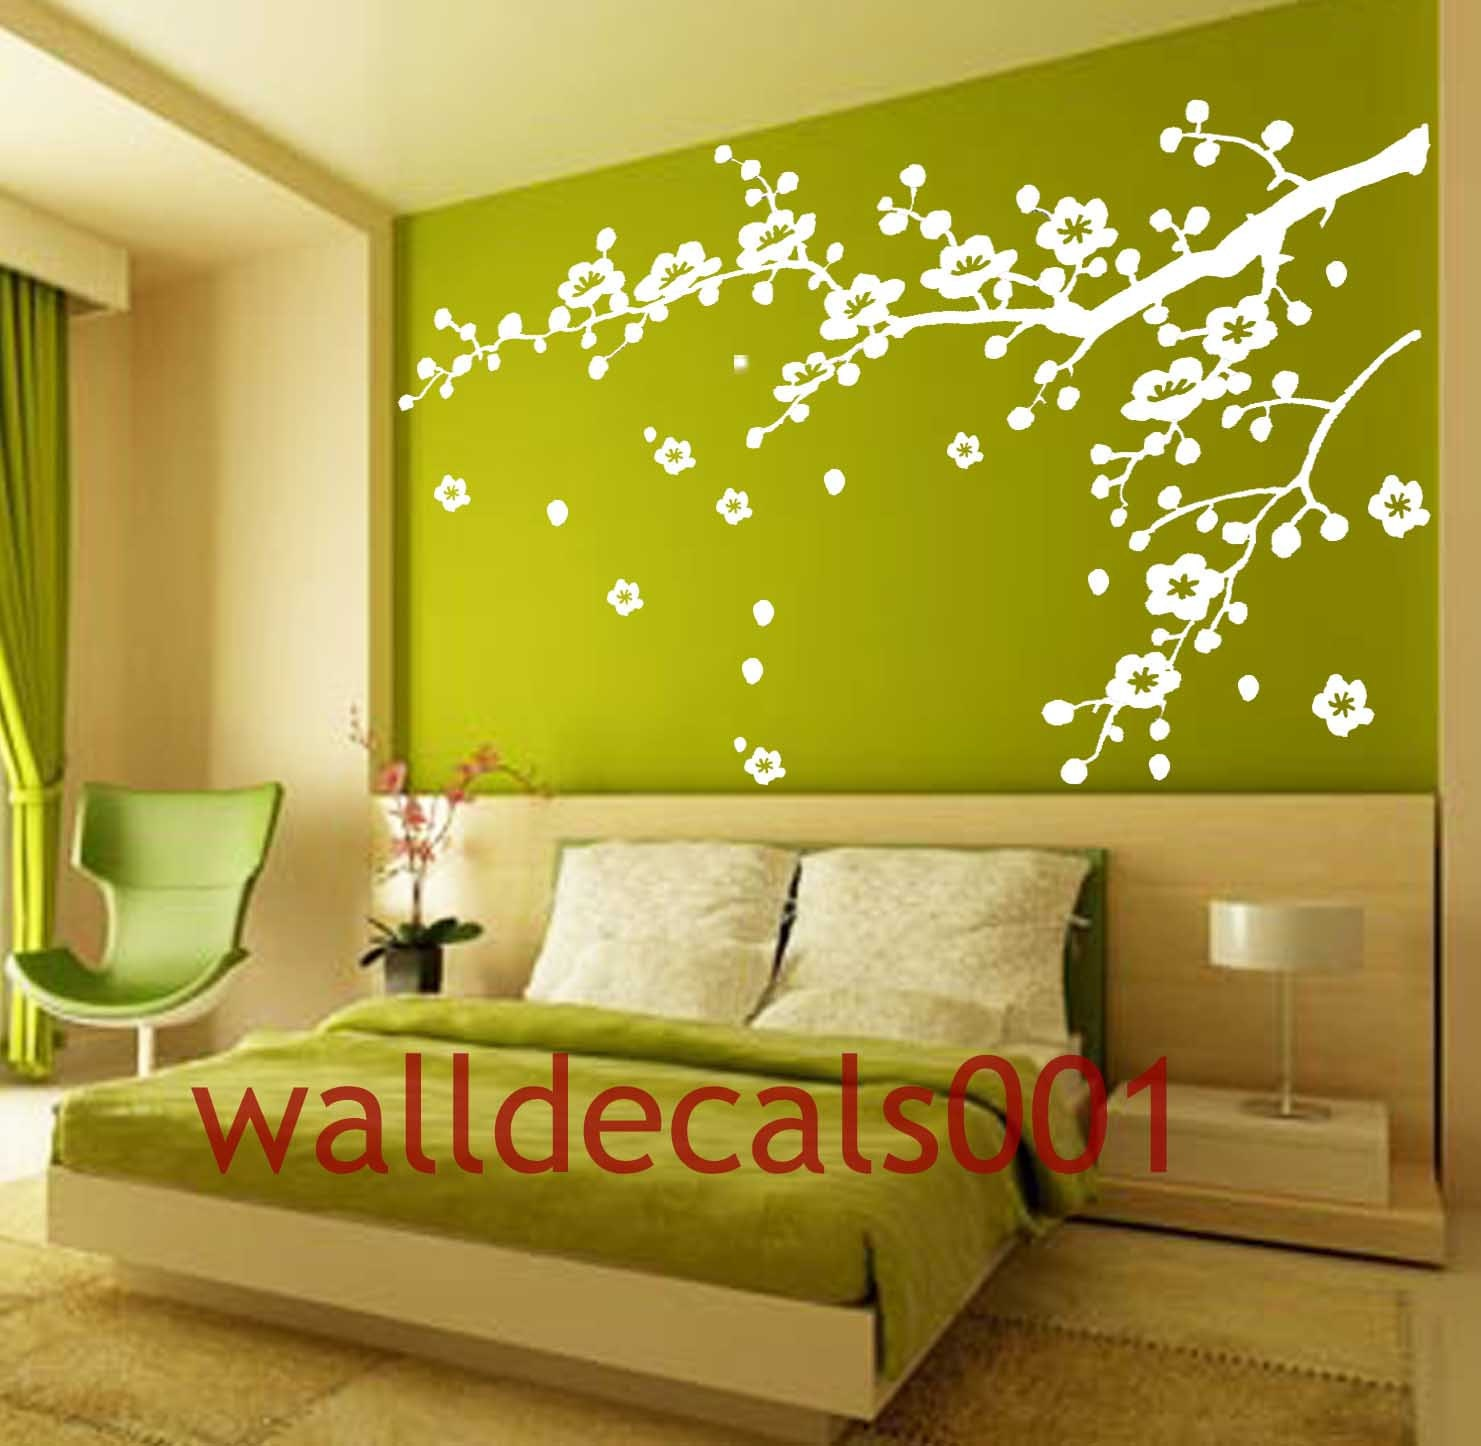 wall decor decals rumah minimalis. Black Bedroom Furniture Sets. Home Design Ideas